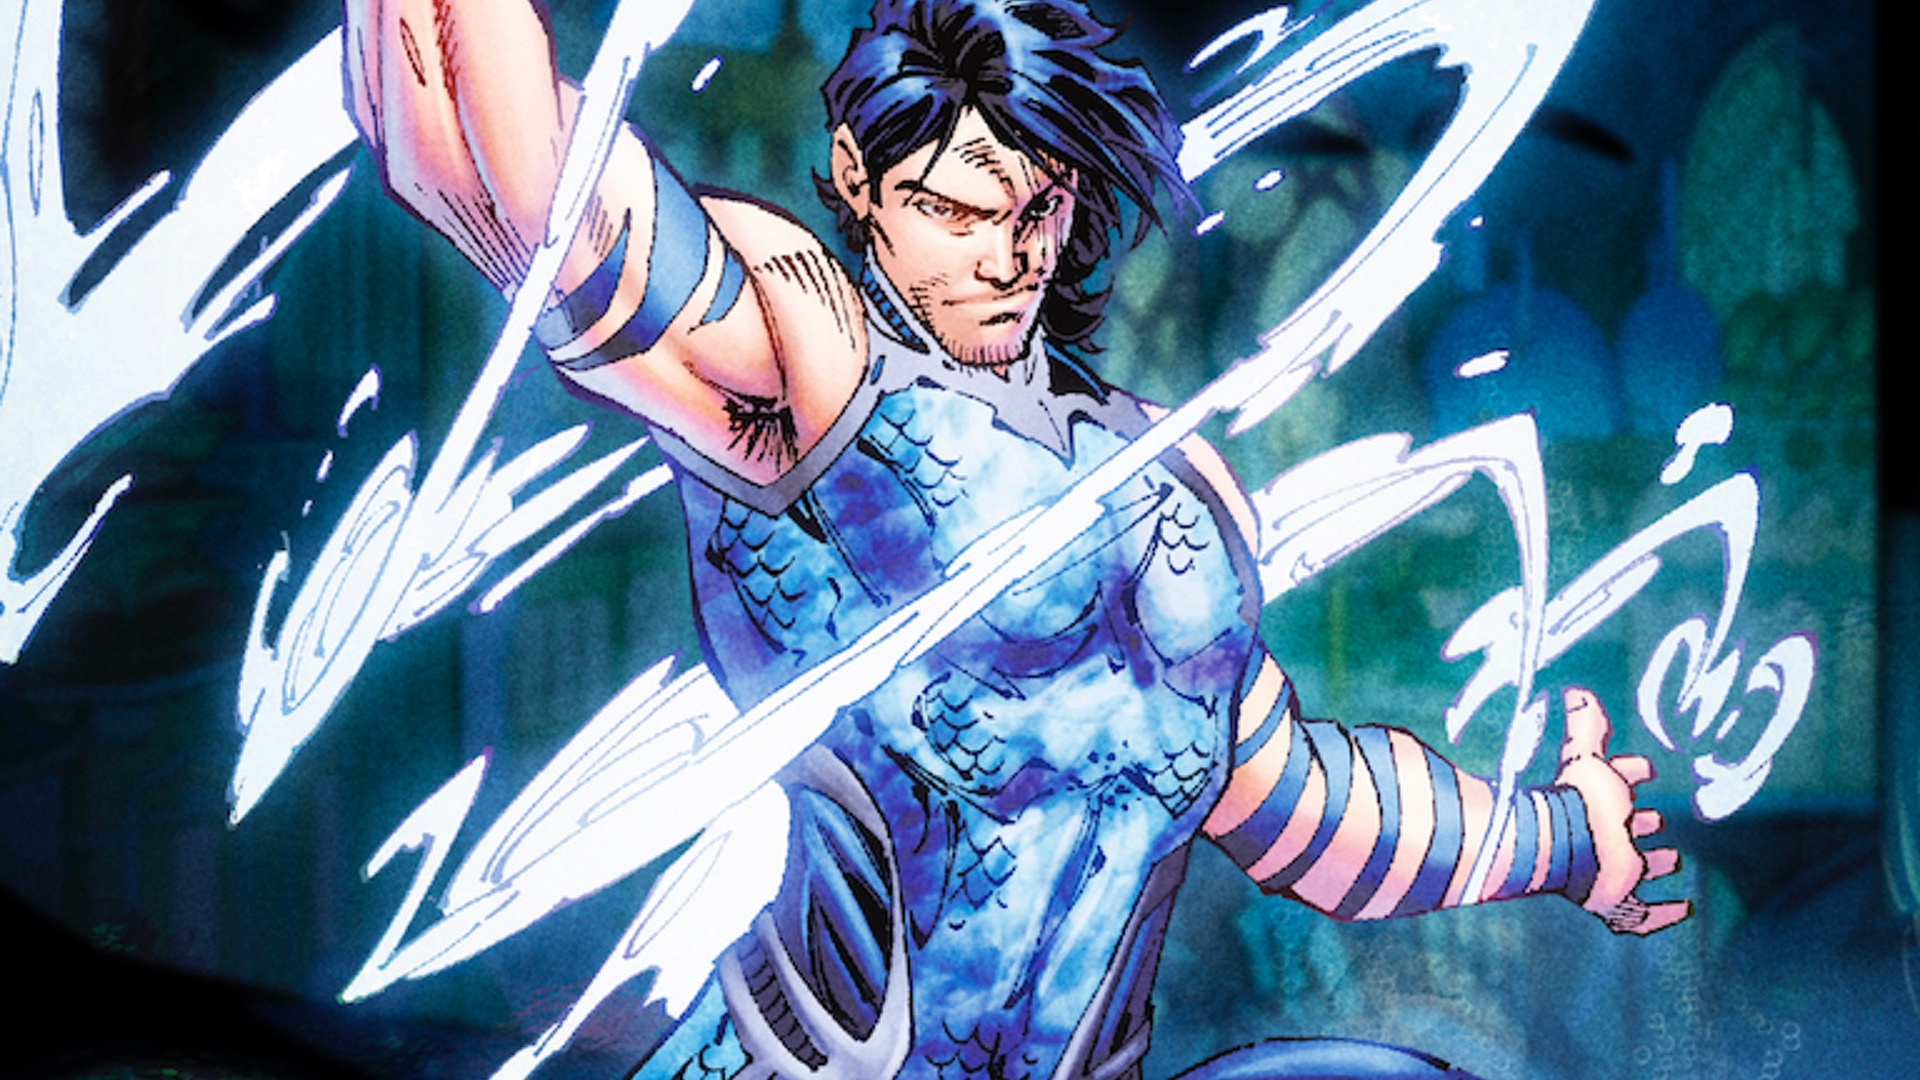 aqualad-is-coming-to-dcs-titans-season-2-and-he-will-be-played-by-drew-van-acker-social.jpg